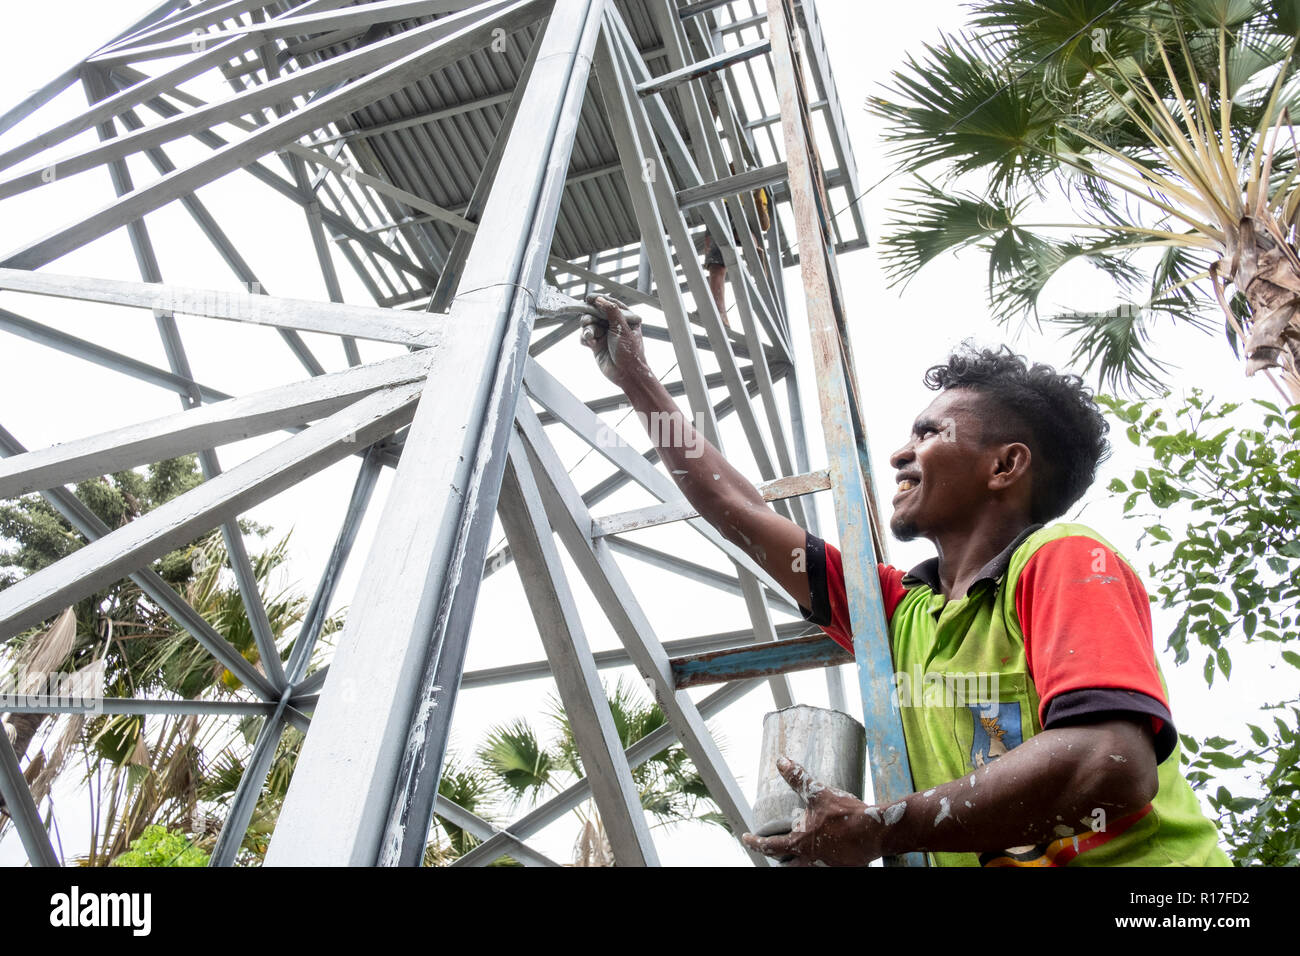 A villager paints a new water tower in Kasait, Liquica, Timor-Leste. This has enabled the villagers to have fresh water for the first time. Stock Photo